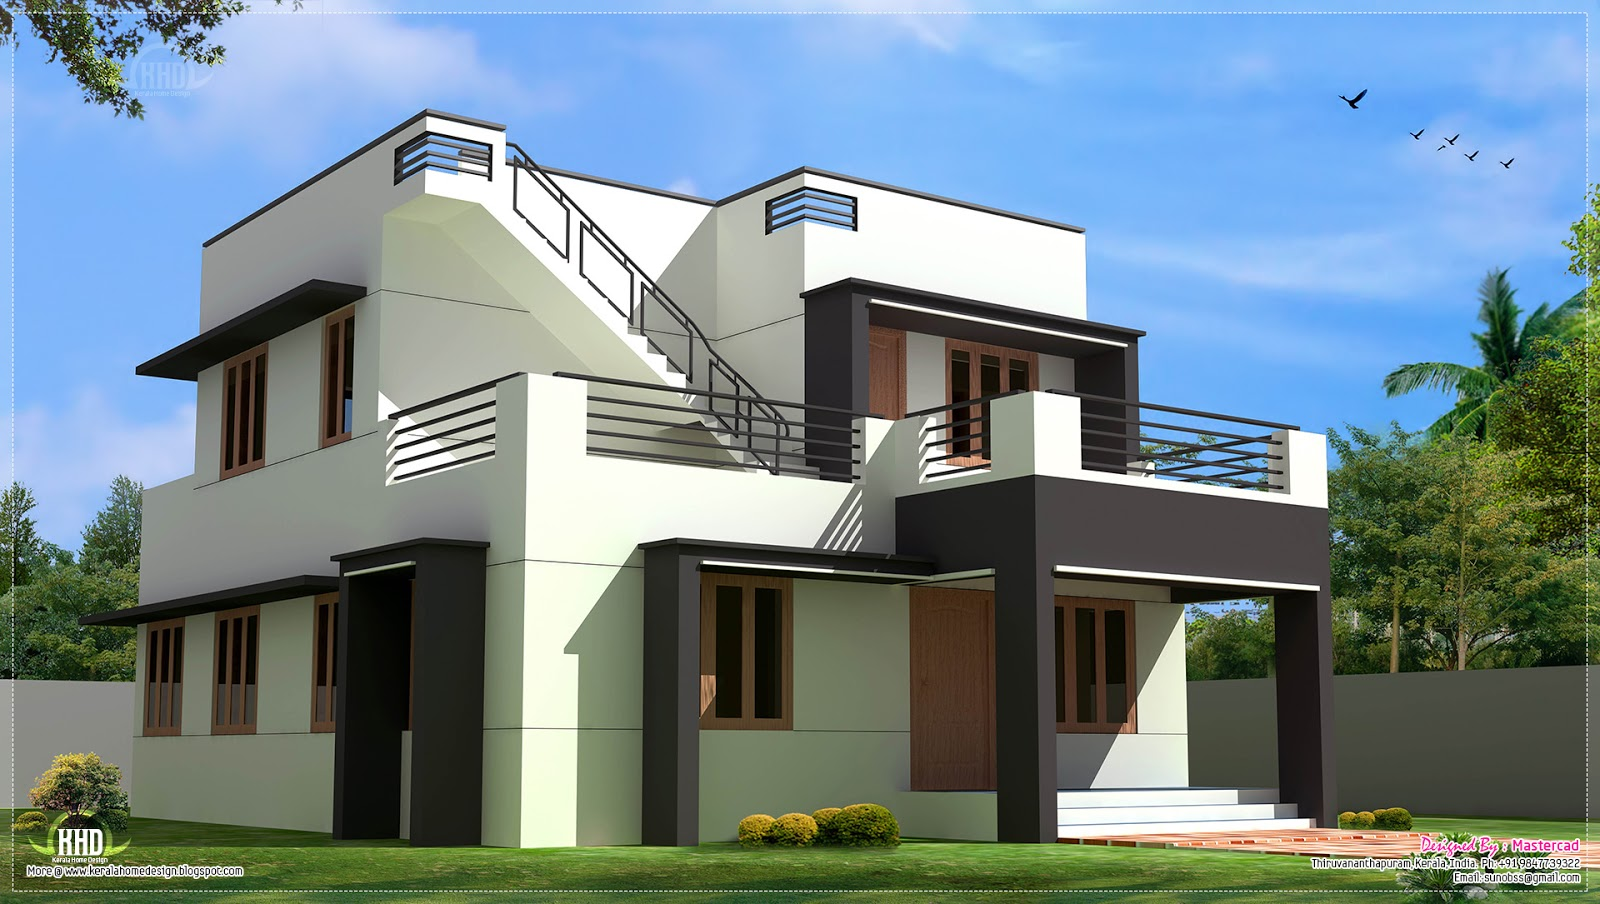 Modern house design in 1700 kerala home design for Modern indian house plans